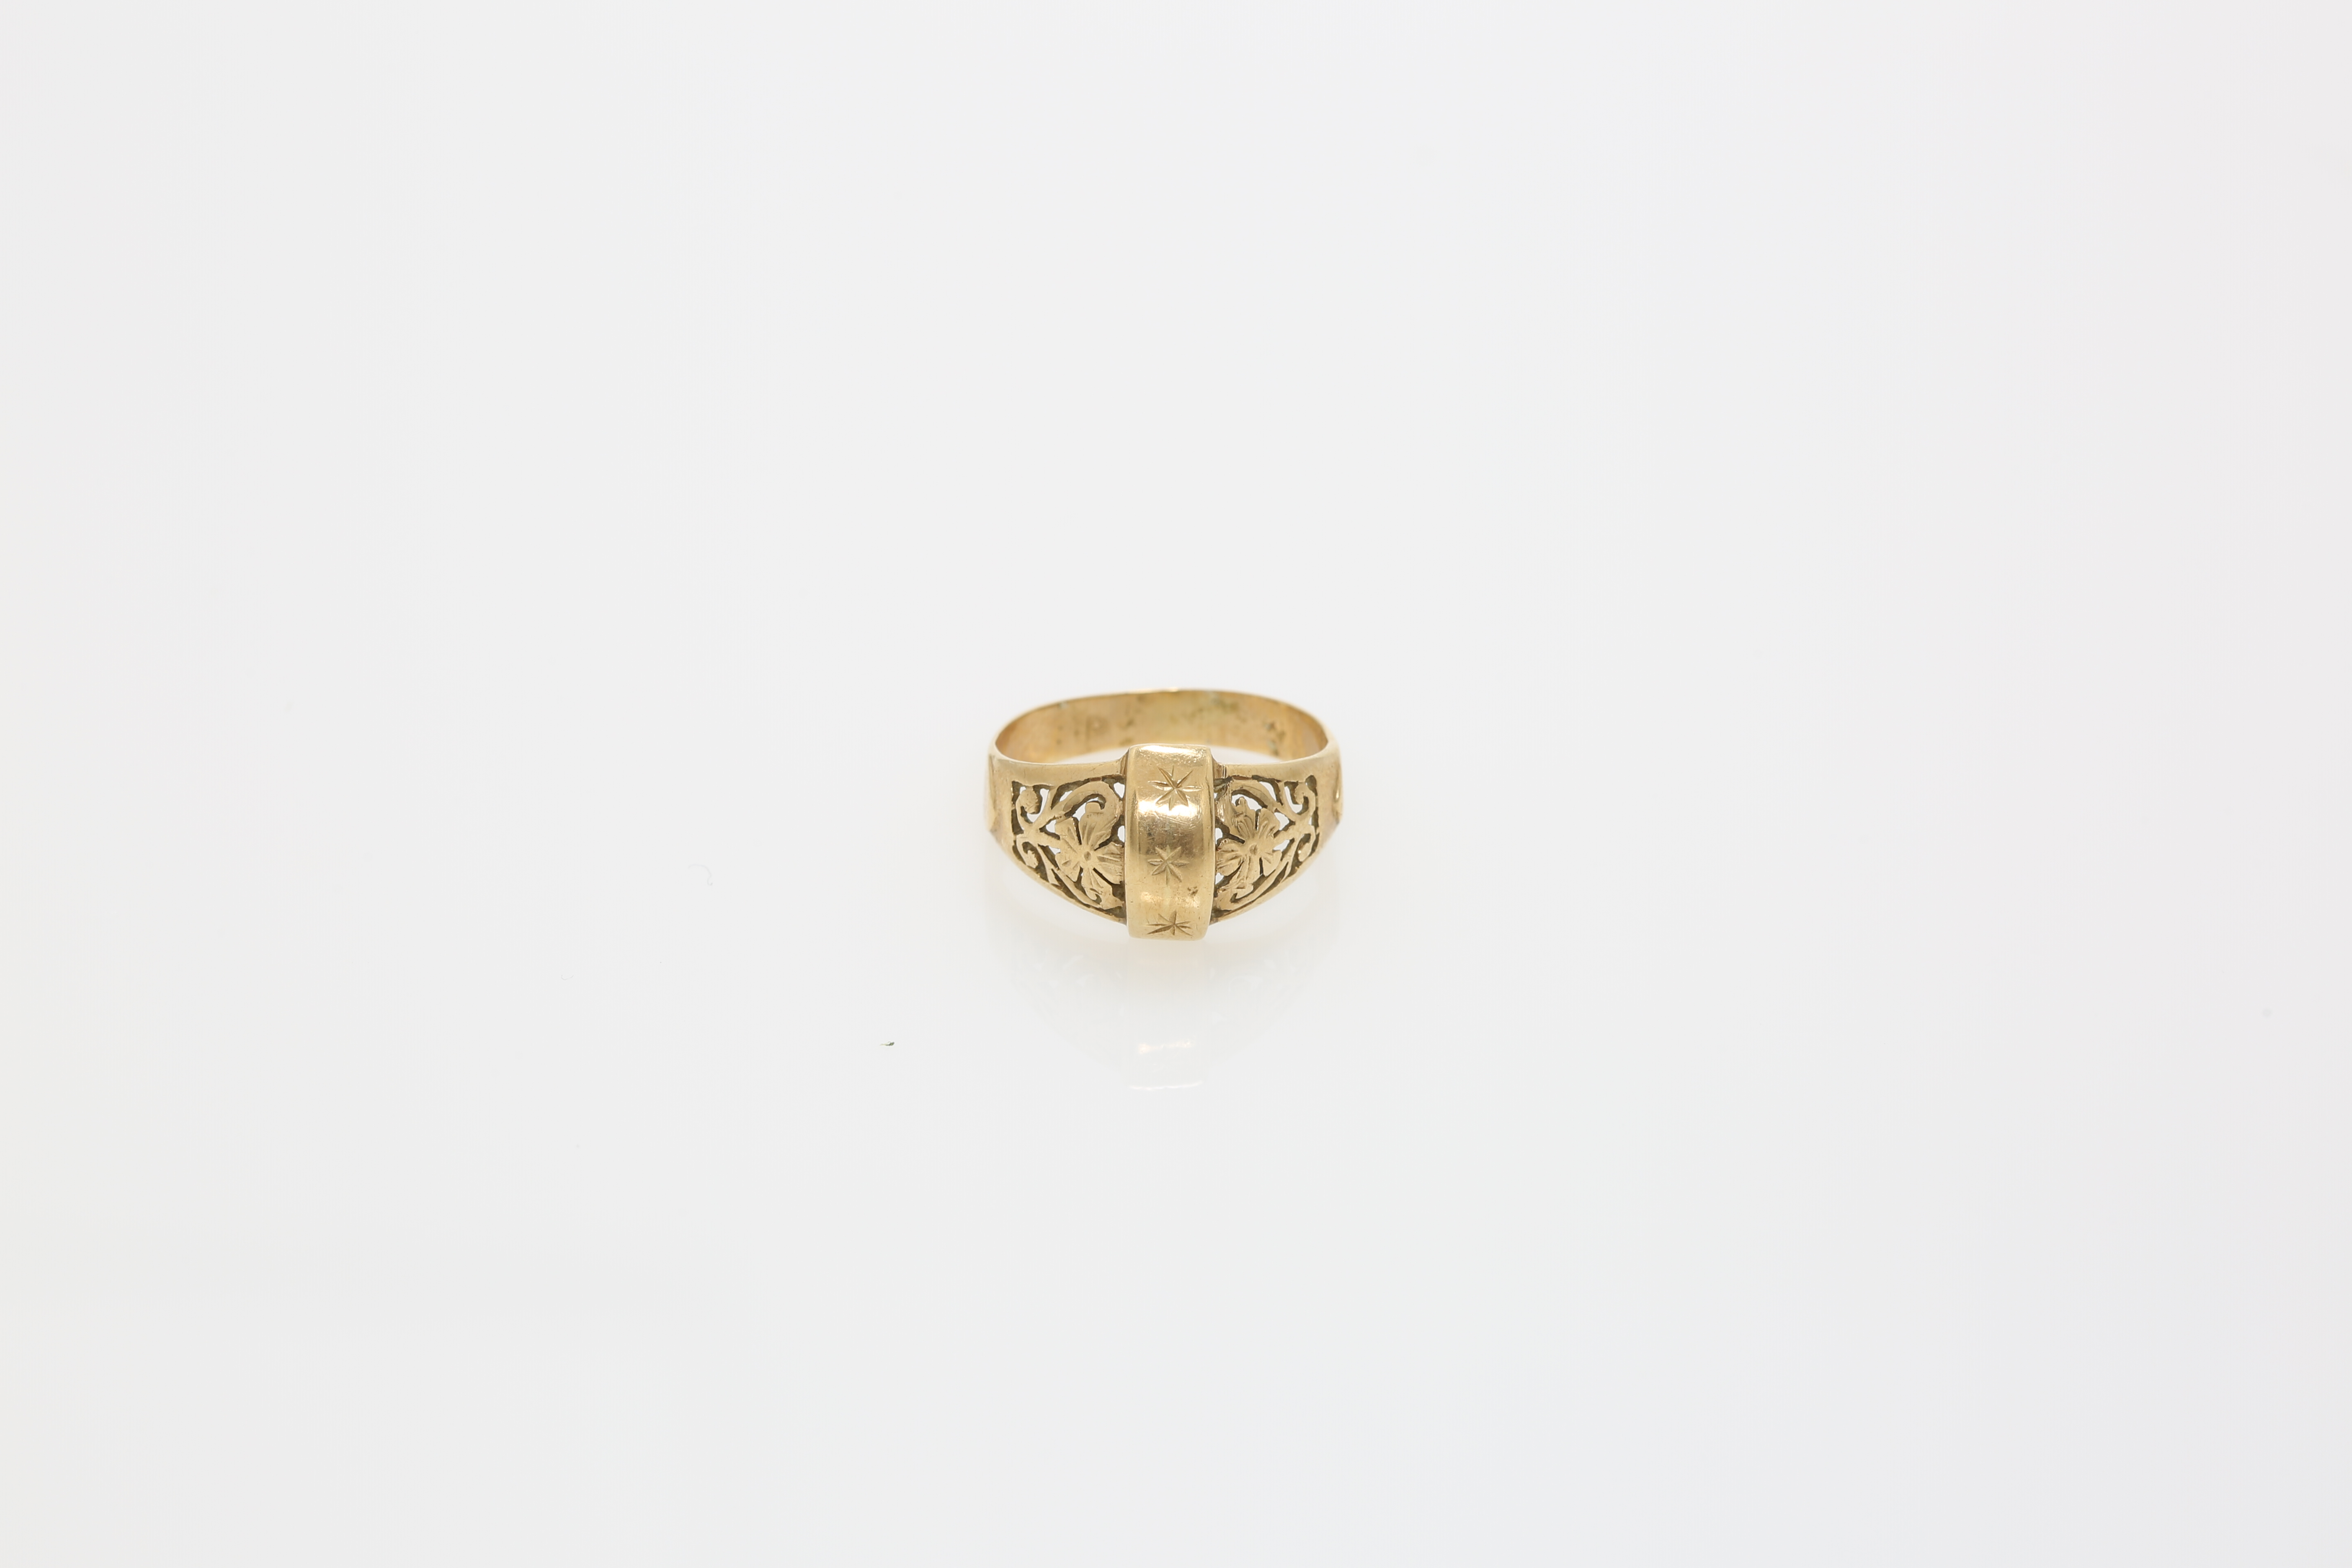 An early 20th century Constantinople gold ring. Approx: 3 gr - Image 2 of 2